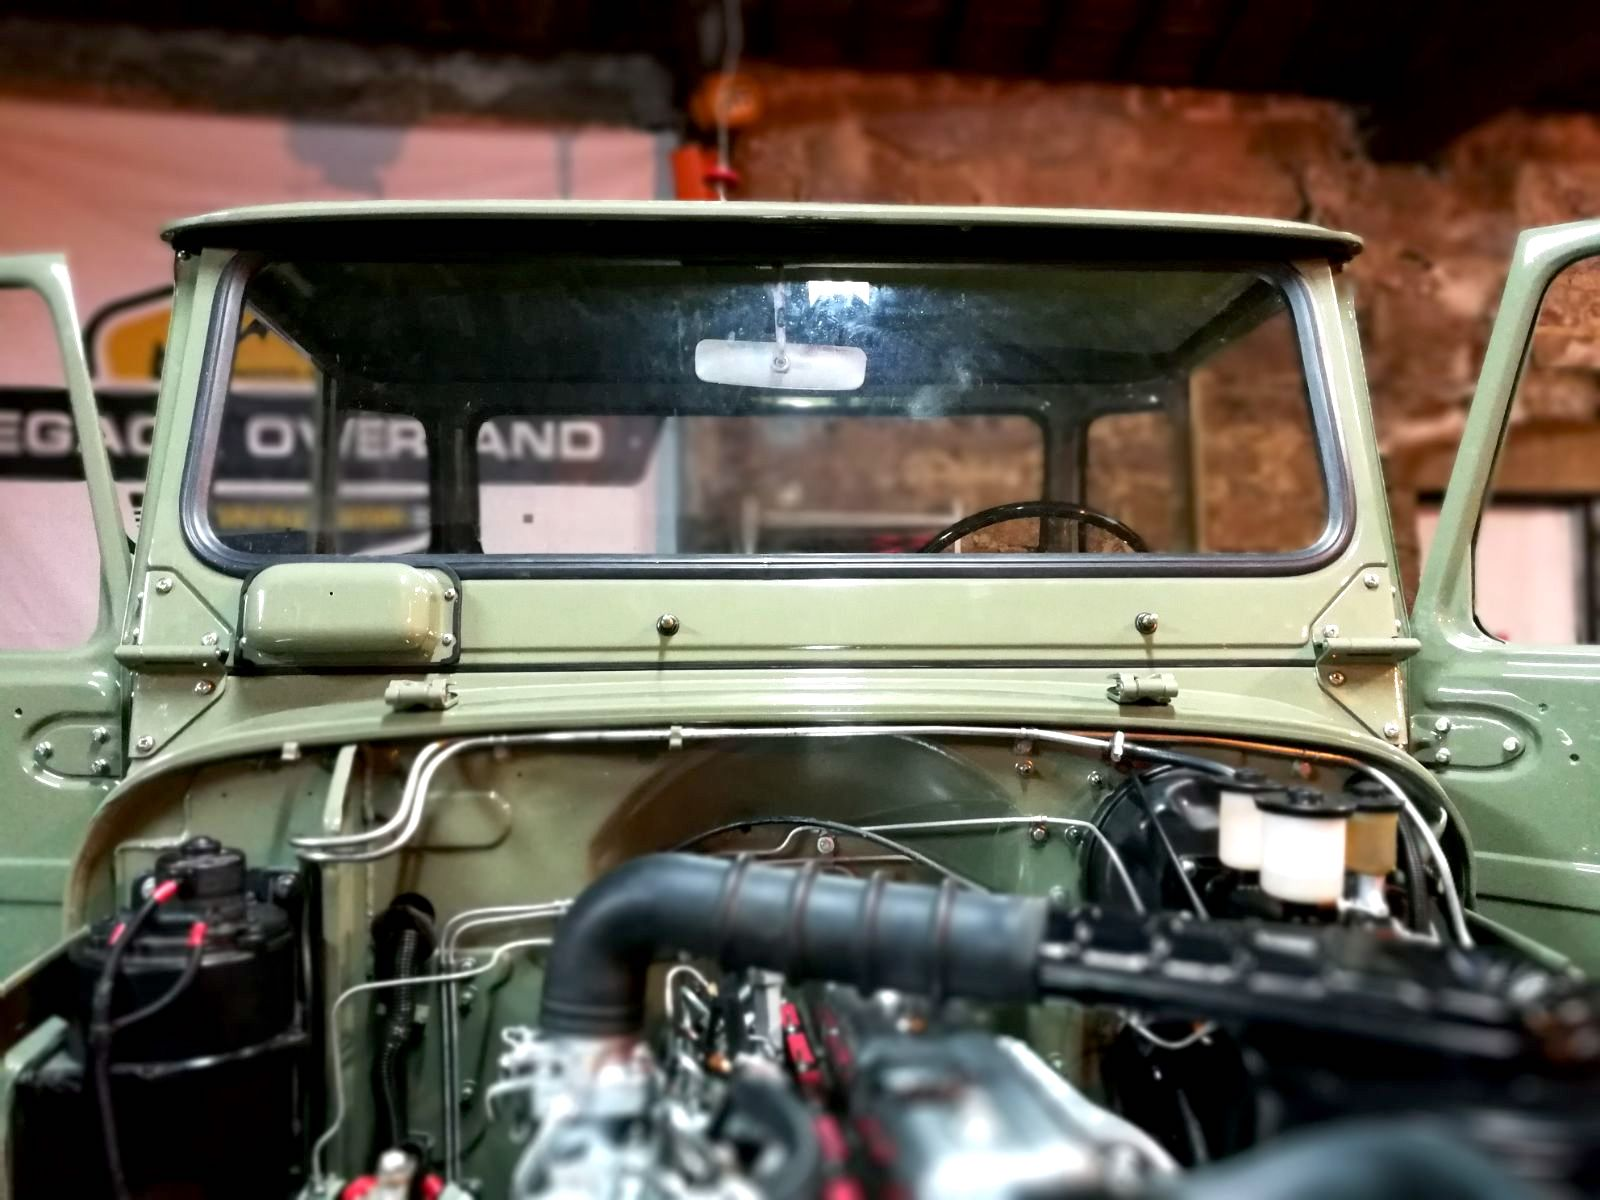 LegacyOverland_1978_ToyotaLandCruiser_HJ45_pick-up_buildphotos_8.JPG